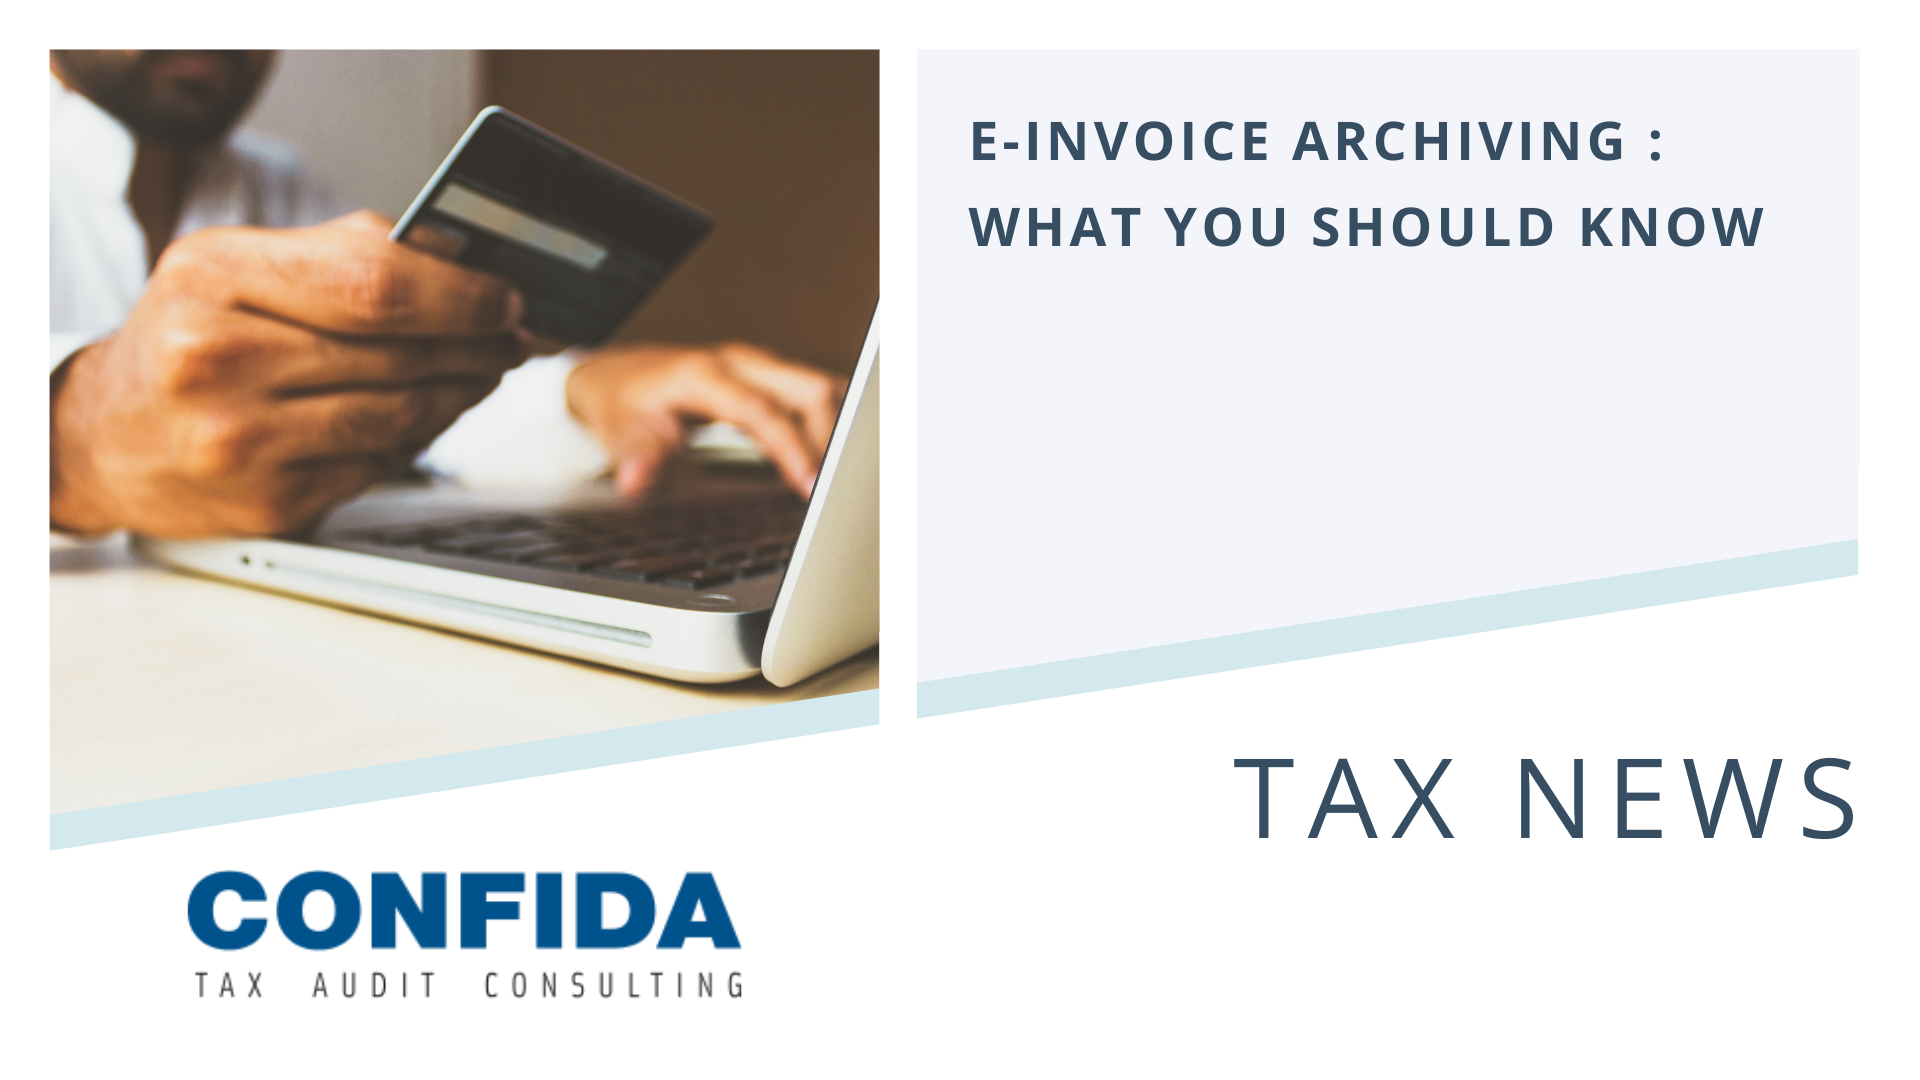 e-Invoice archiving